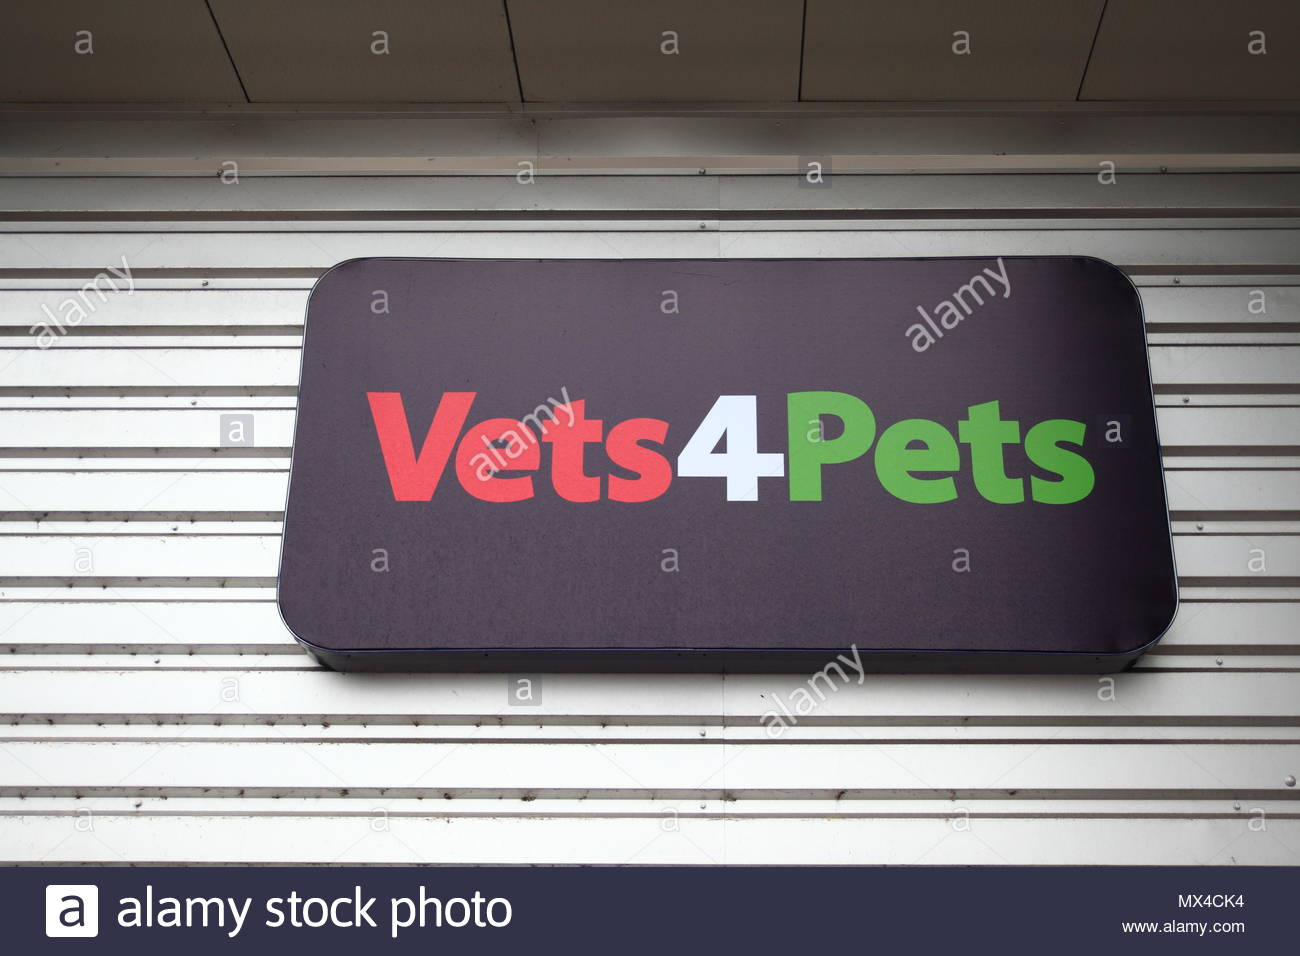 Pets At Home Store Front At Snipe Retail Park Ashton Under Lyne Tameside Greater Manchester June 2018 Stock Photo Alamy